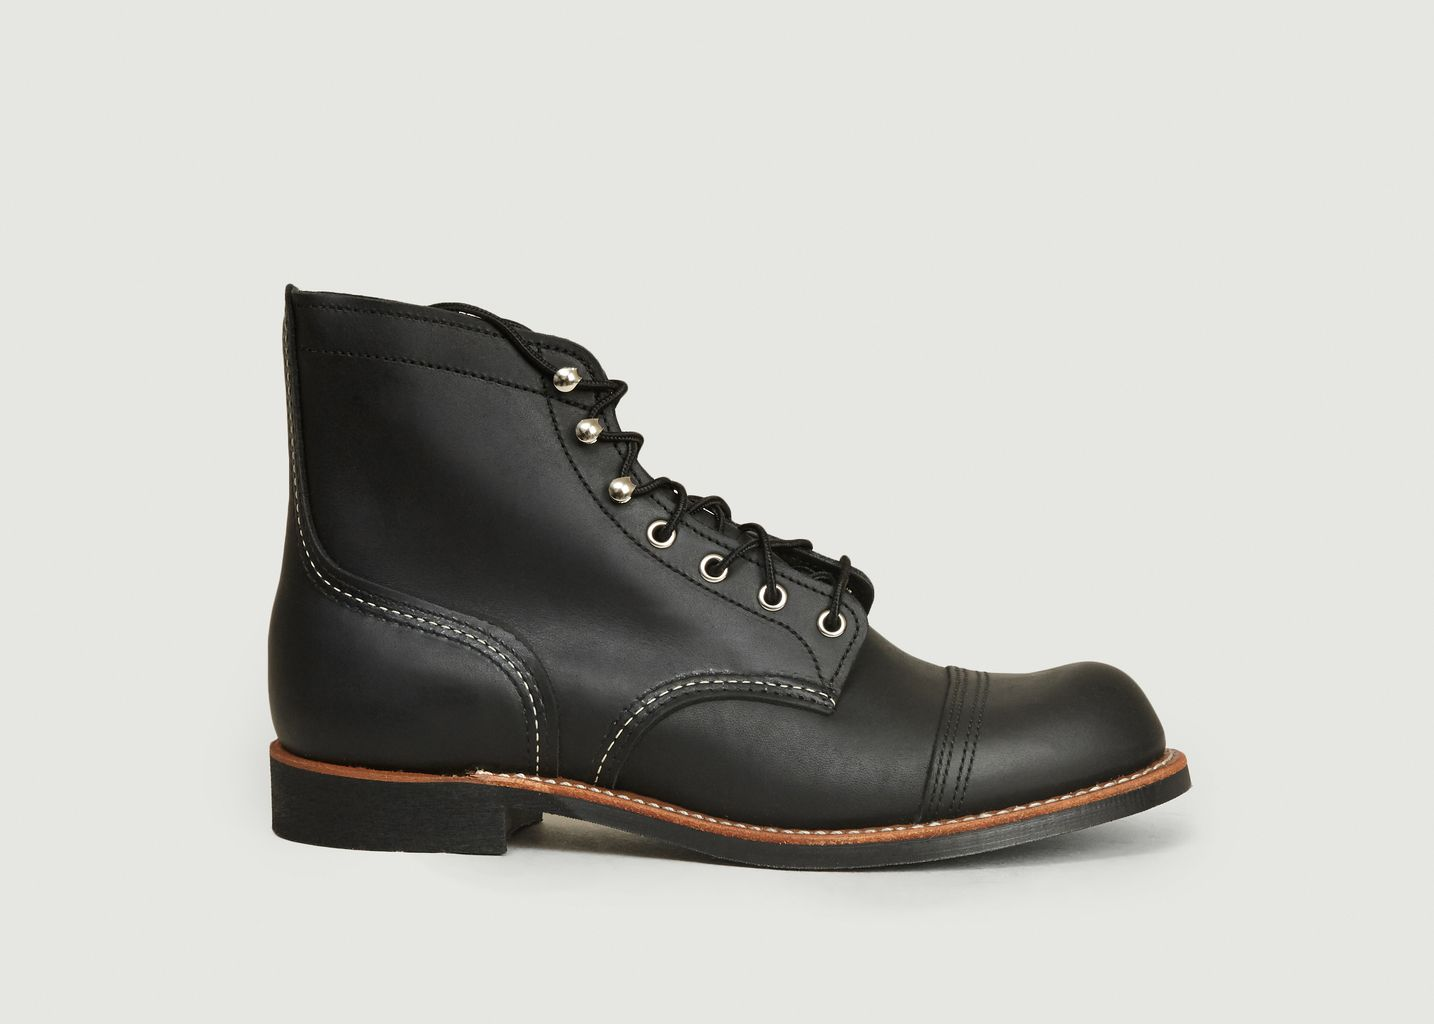 Boots Iron Ranger Black Harness - Red Wing Shoes